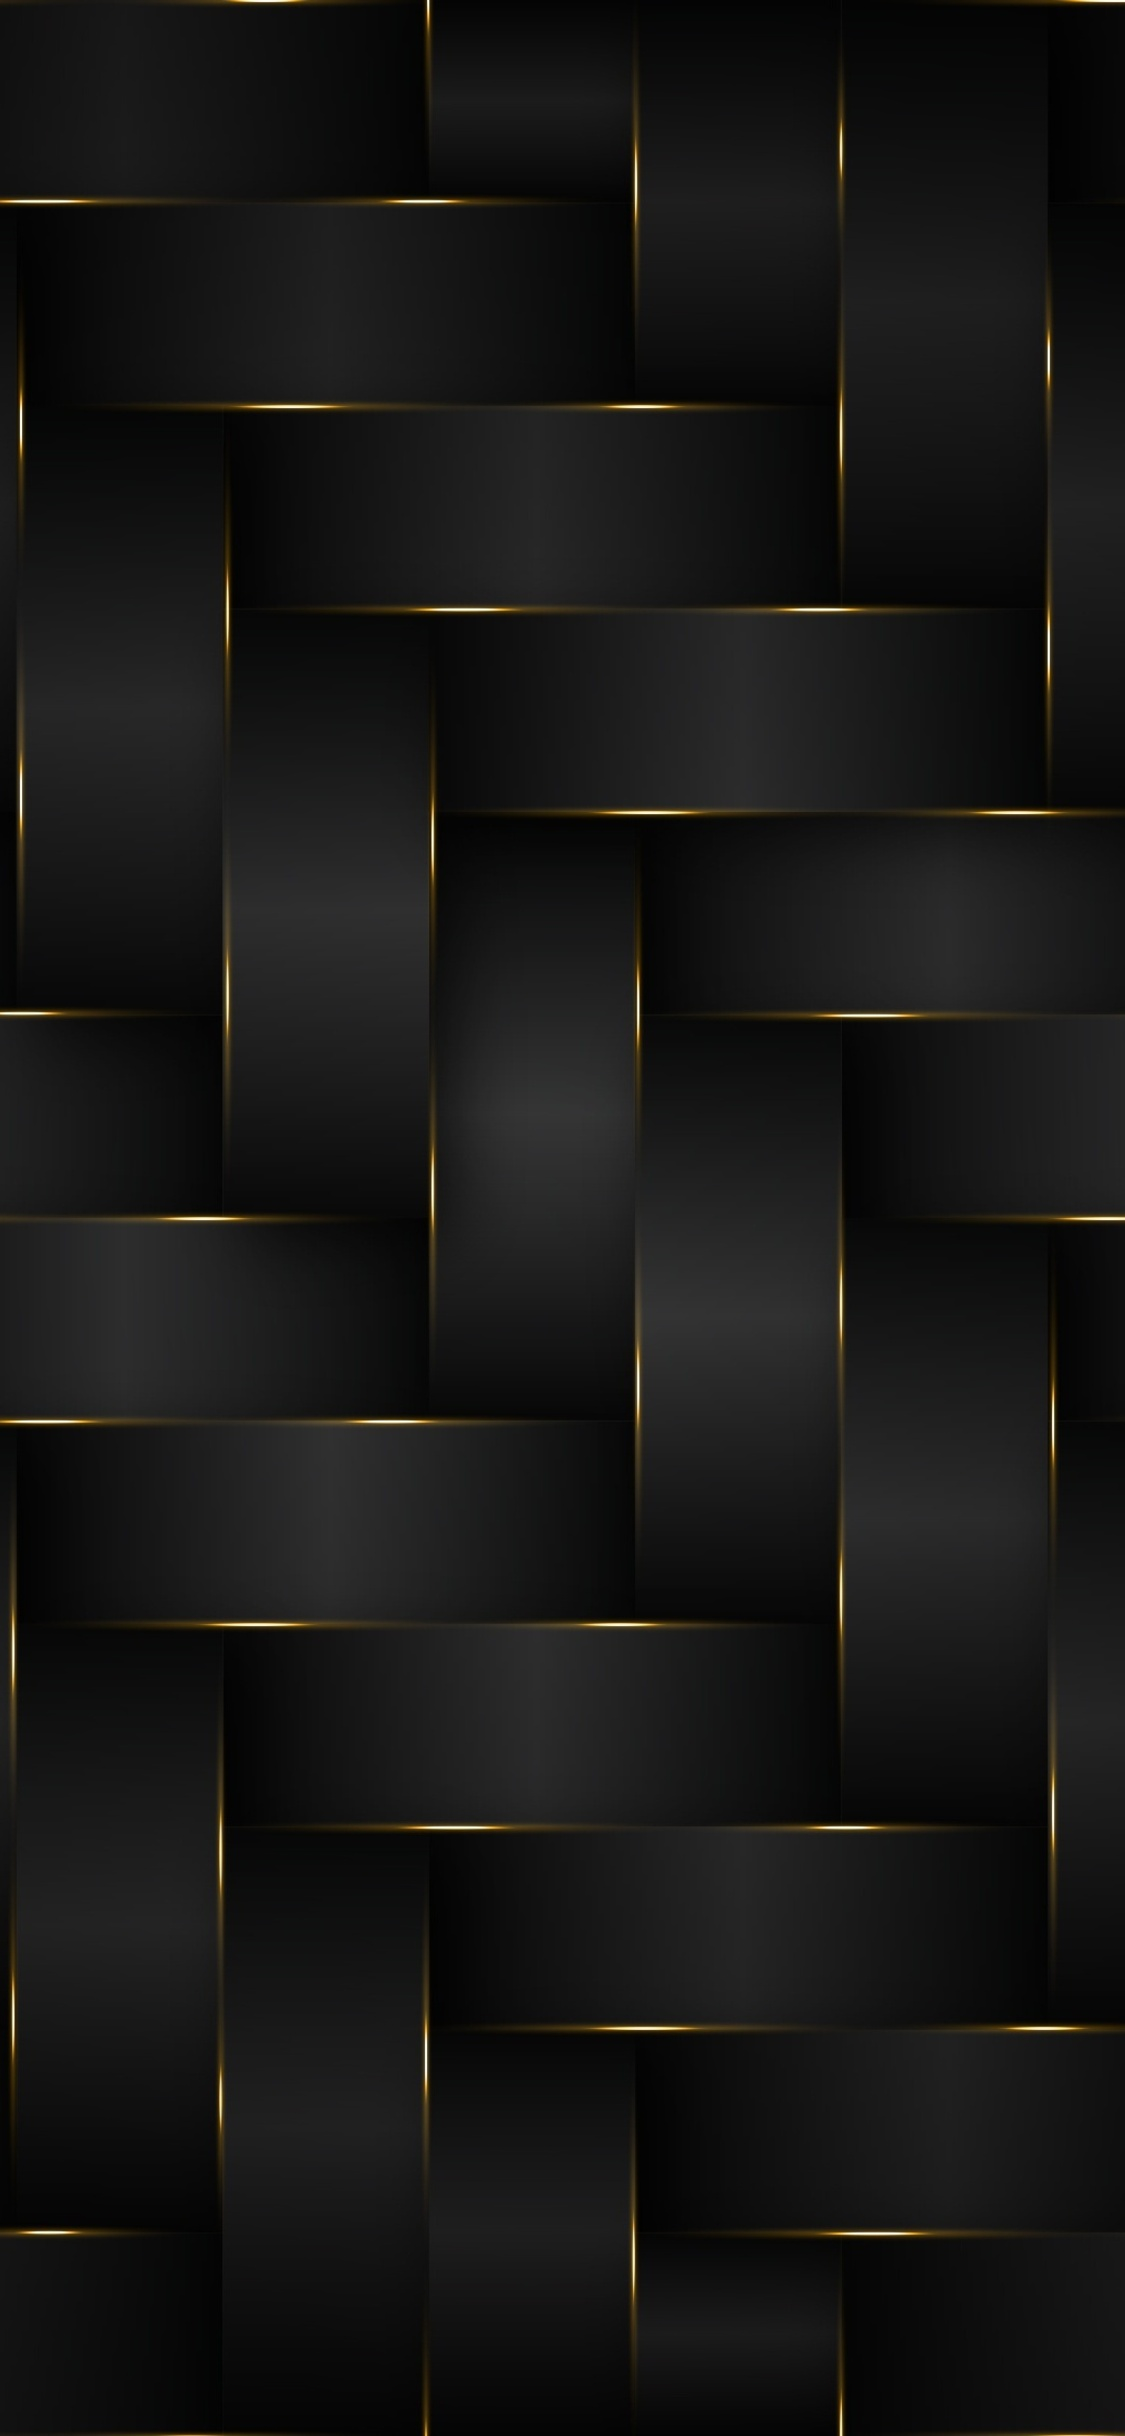 1125x2436 Dark Gold Pattern 4k Iphone Xs Iphone 10 Iphone X Hd 4k Wallpapers Images Backgrounds Photos And Pictures